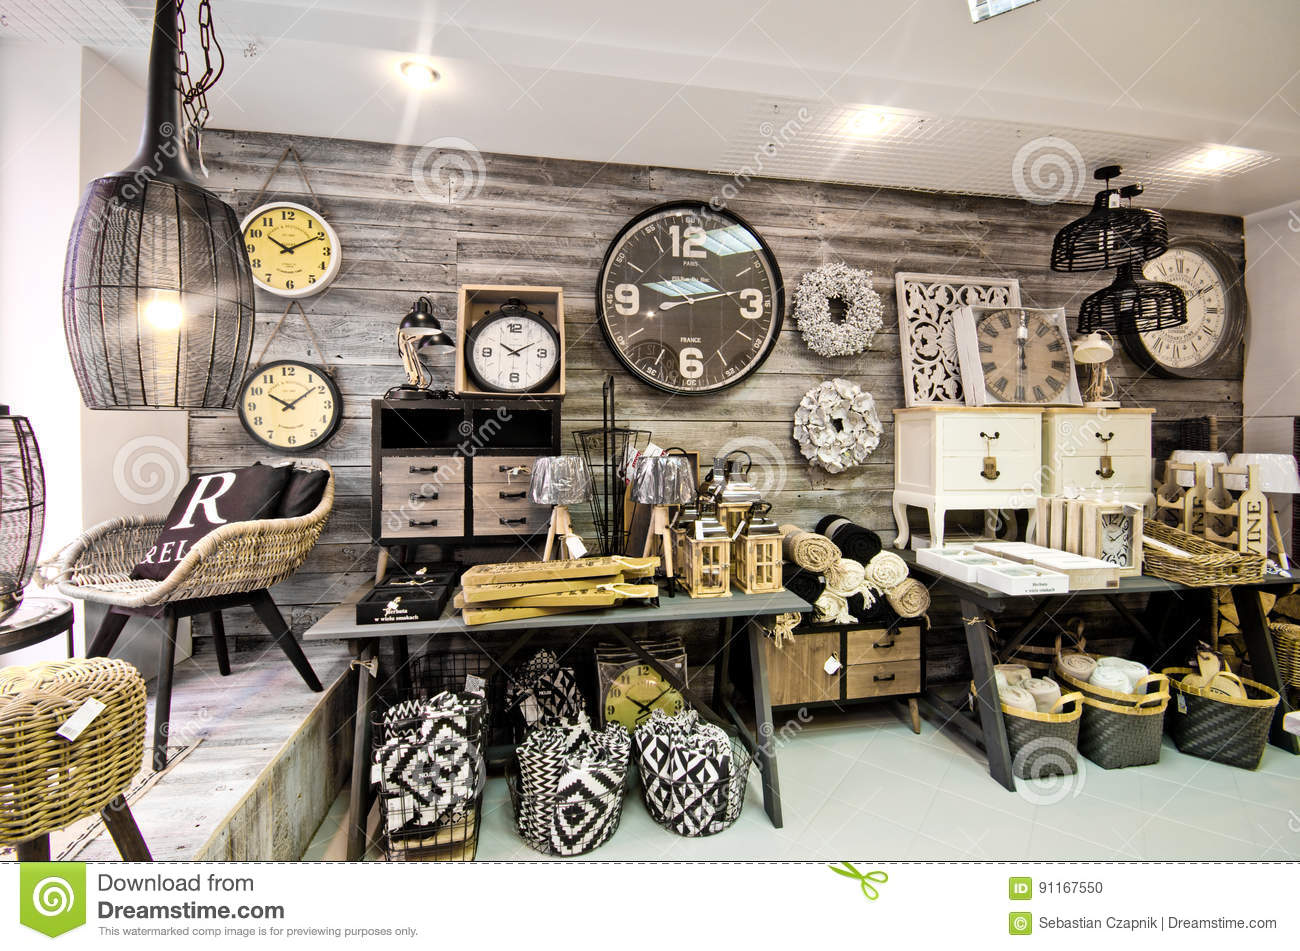 Home Decorations Shop Interior Stock Photo Image 91167550